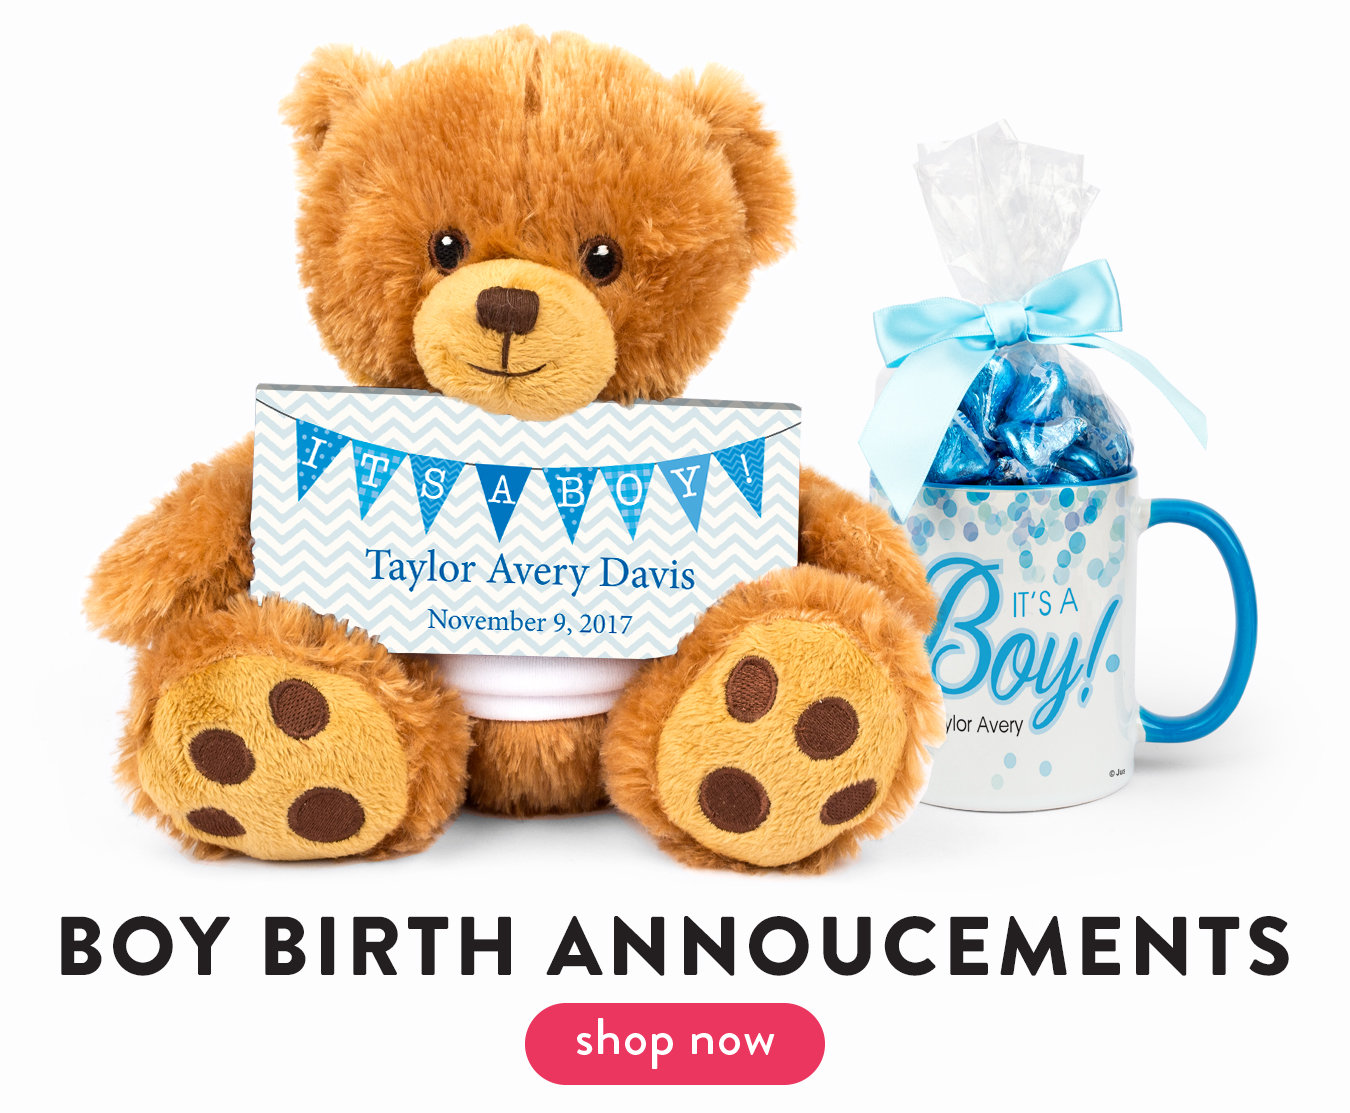 Shop Boy Birth Announcements